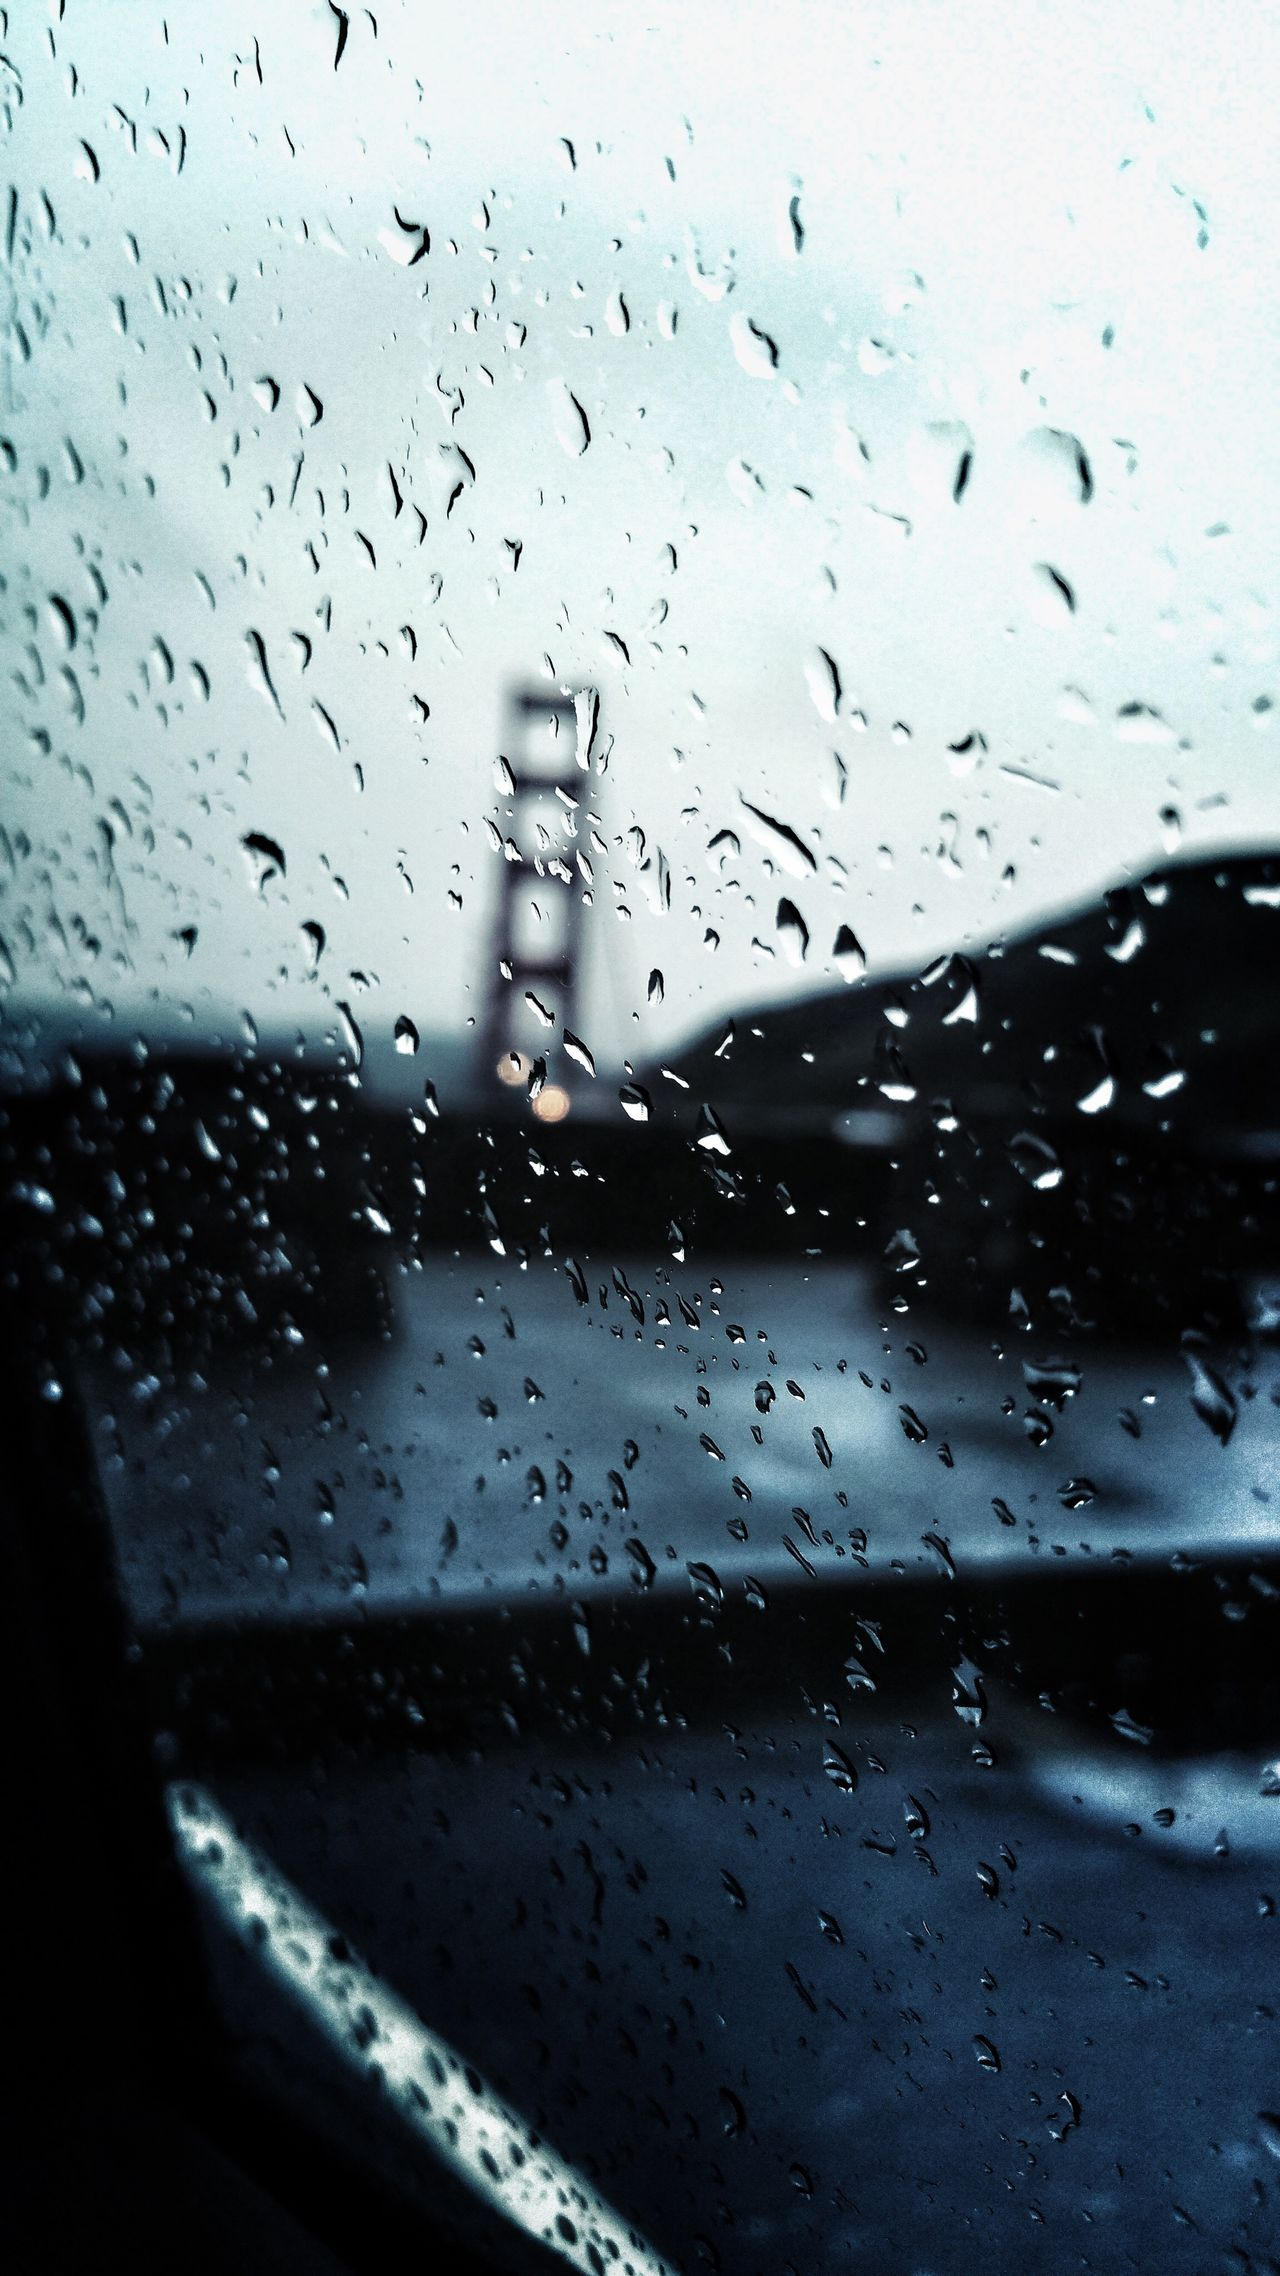 Golden Gate Bridge, San Francisco, California.🌉🌧 Golden Gate Bridge San Francisco California Drop Wet Rain RainDrop Sadness Loneliness Lonely Bridge No People Close-up Car Sky Cold Empathy Thinking Land Vehicle